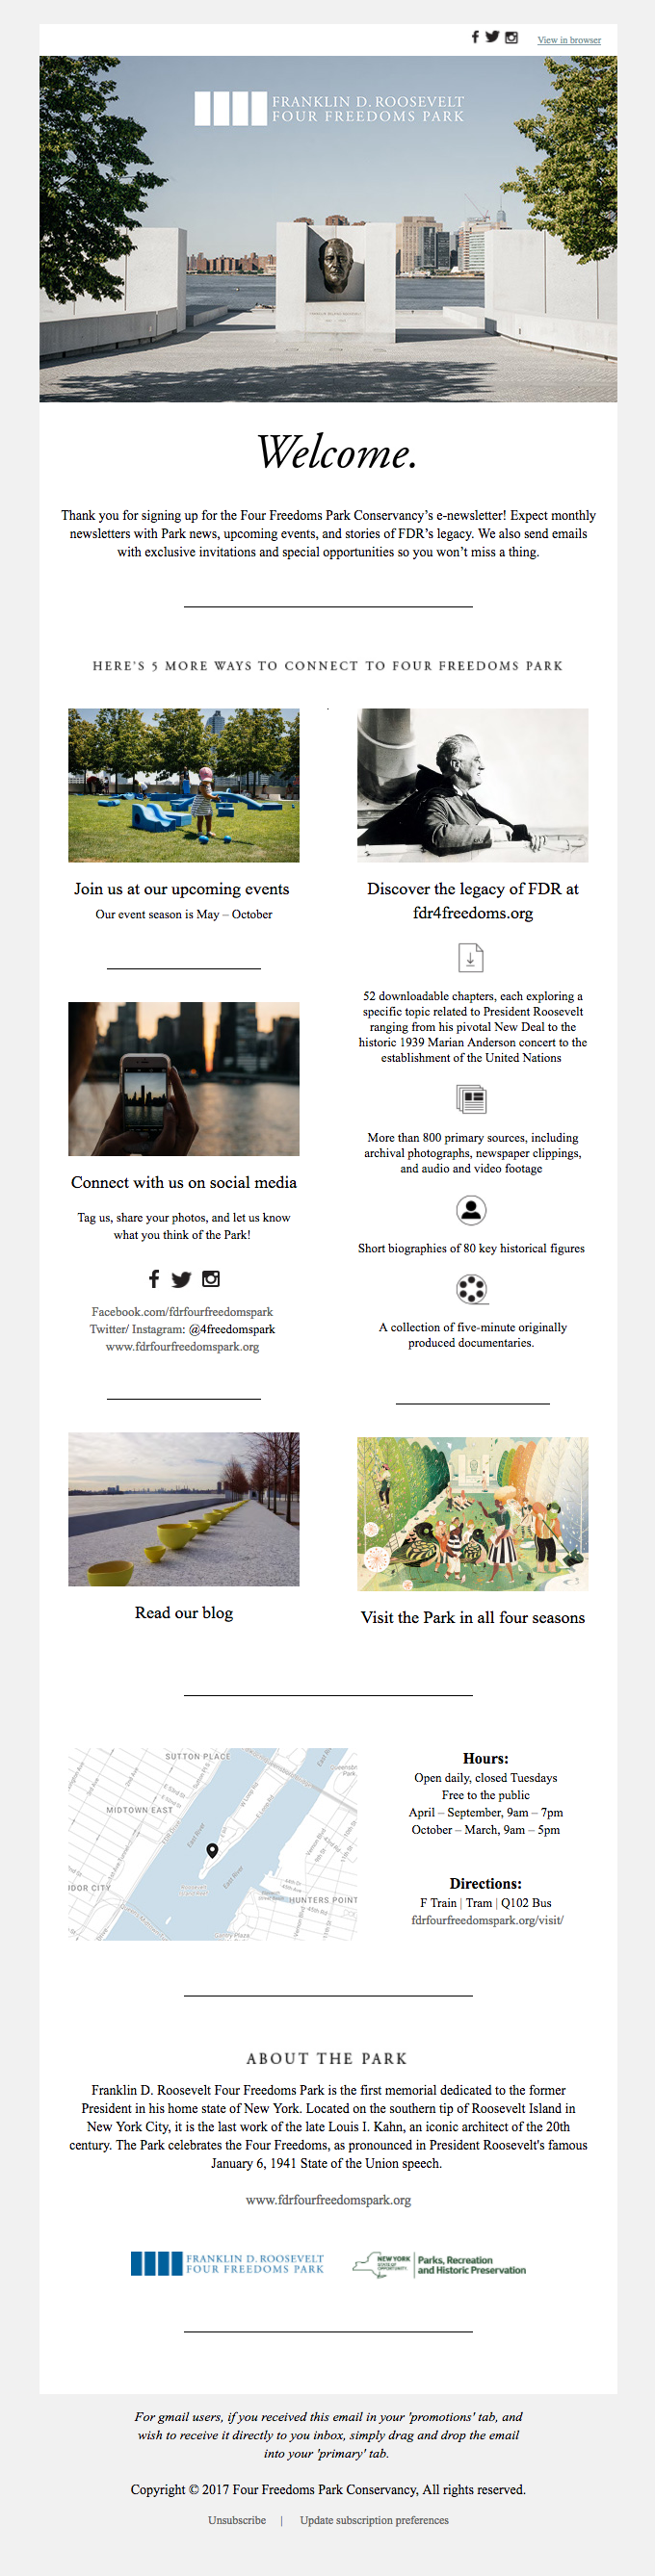 5 Ways to Connect to Four Freedoms Park